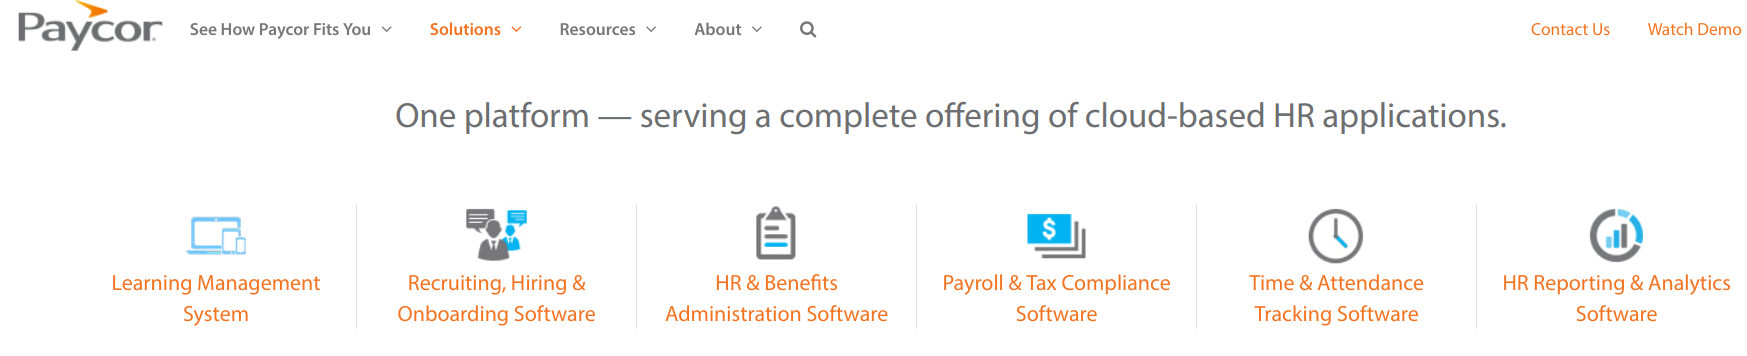 Paycor - HR software